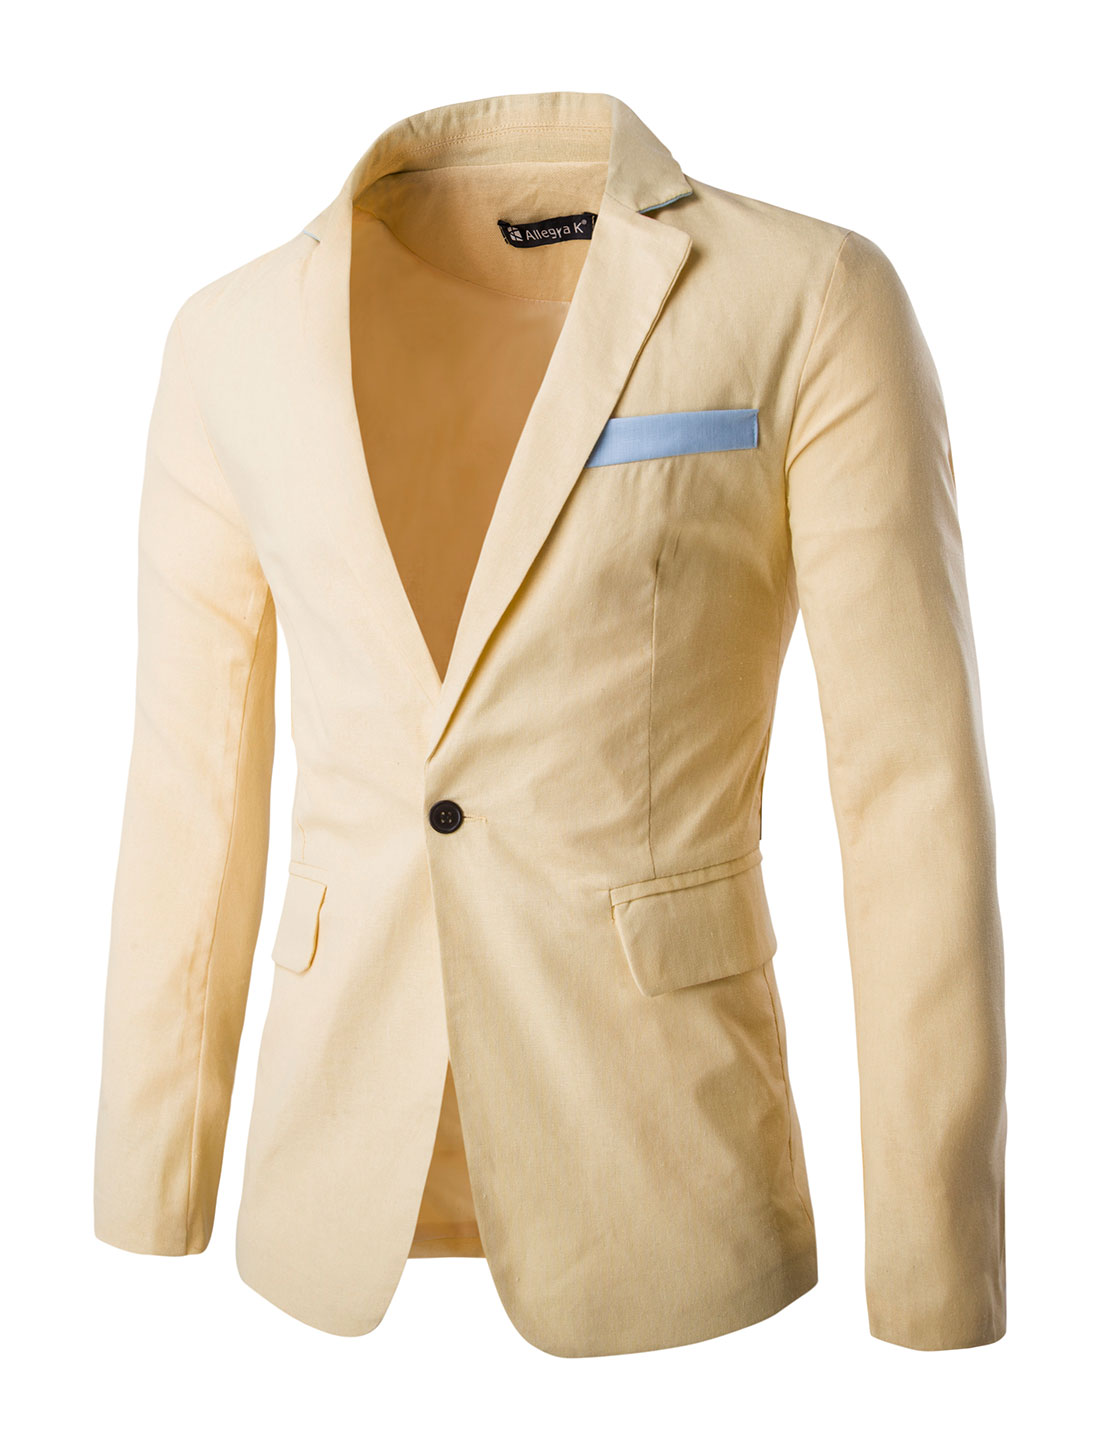 Men Notched Lapel Flap Pockets One-Button Blazer Bright Yellow L